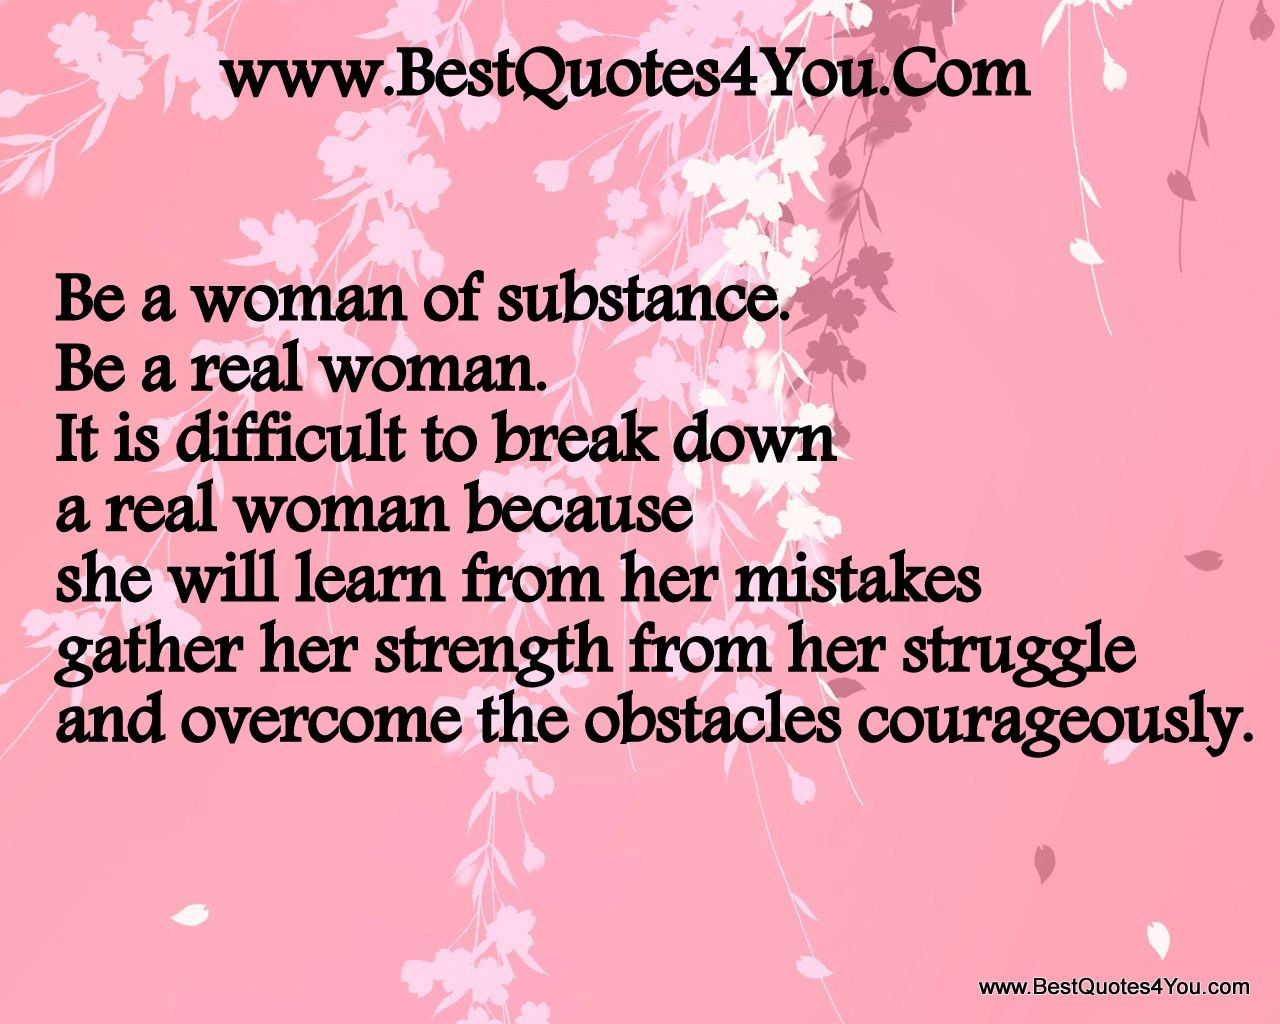 Quotes About Women's Strength Quotes About Women's Strength  Be A Woman Of Substance Be A Real